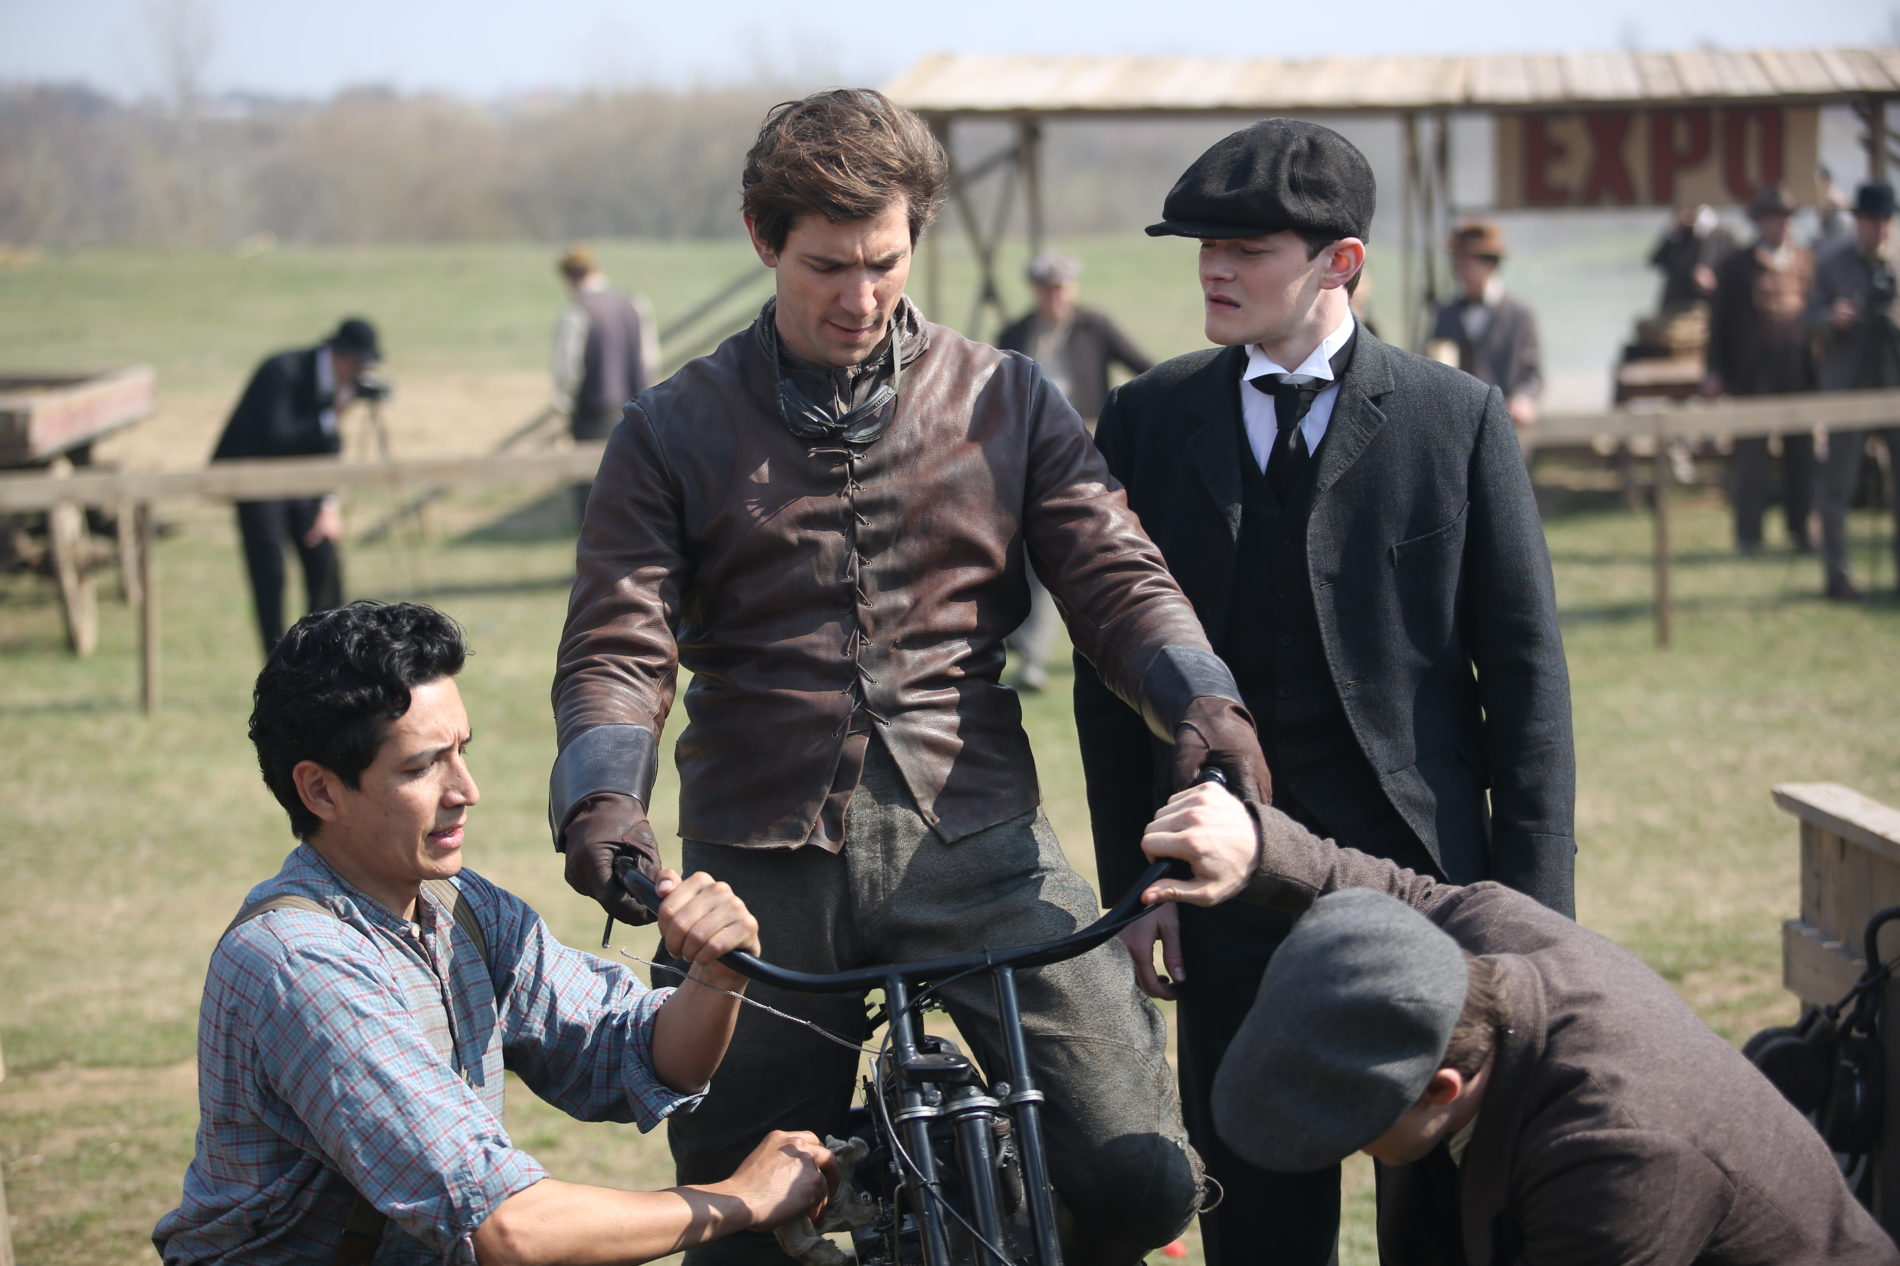 Discovery Channel incursiona en el mundo de las miniseries con Harley and the Davidsons